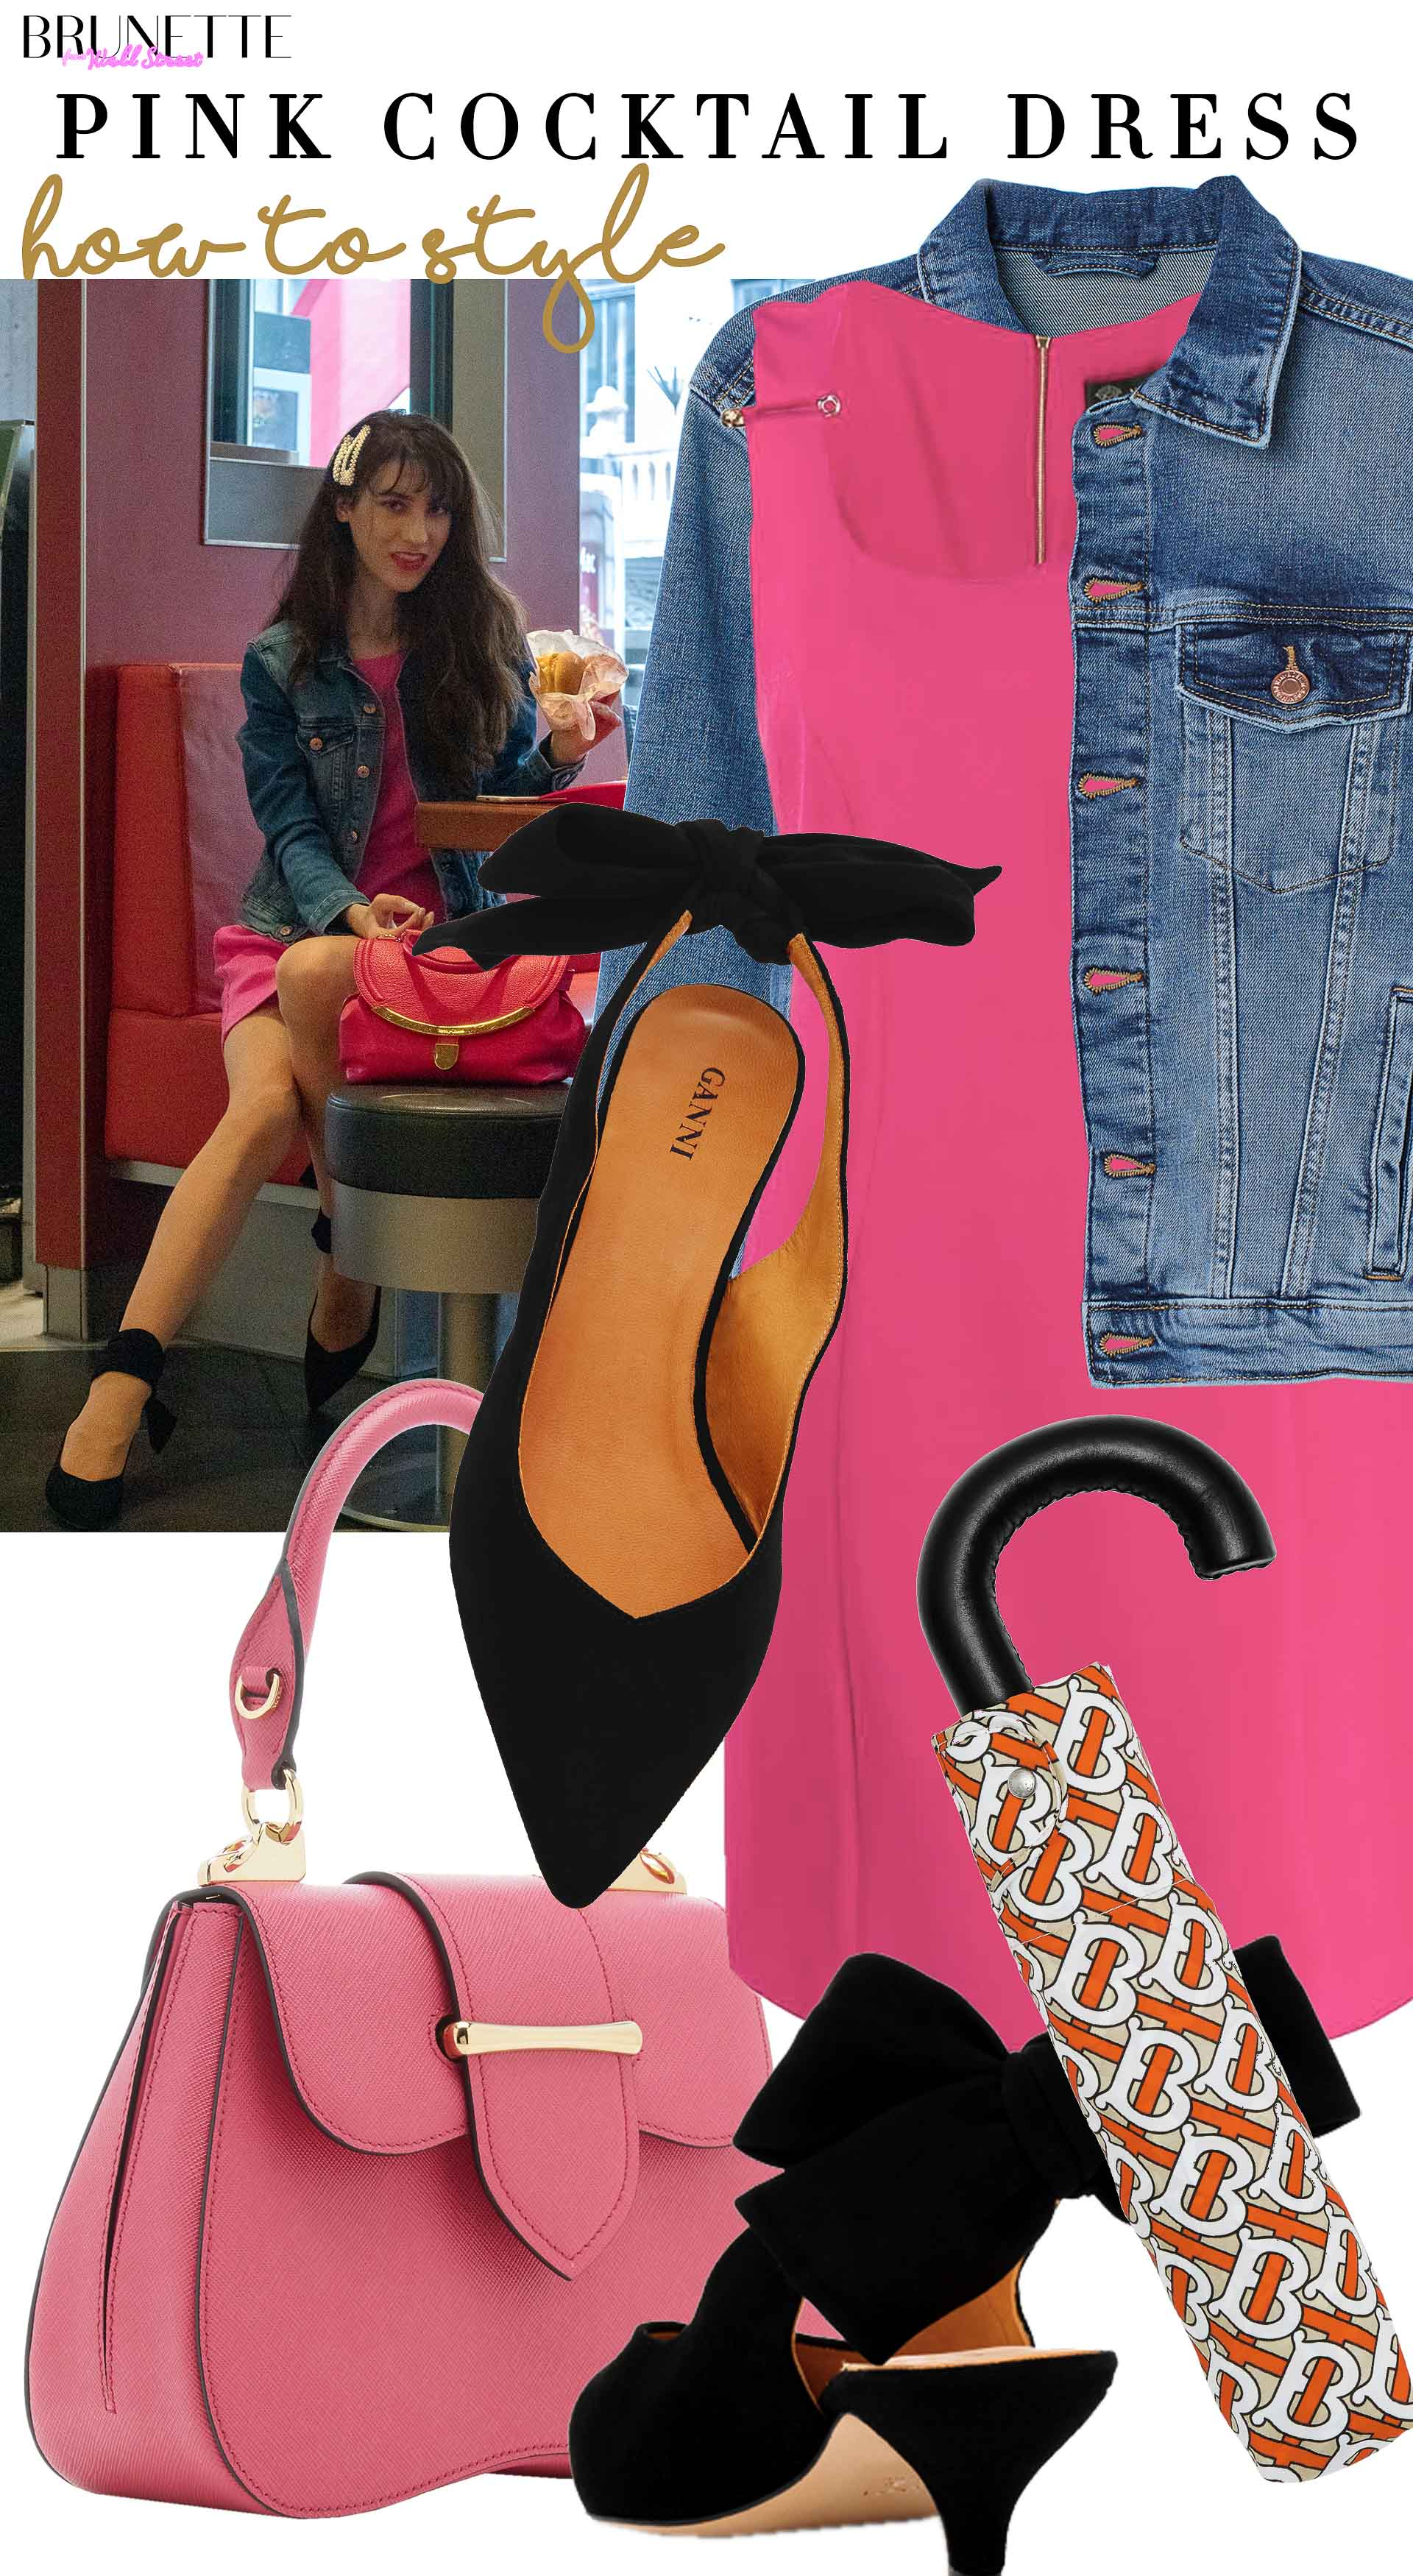 Brunette from Wall Street how to style denim jacket Ganni slingbacks pink cocktail dress prada bag for date in the rain